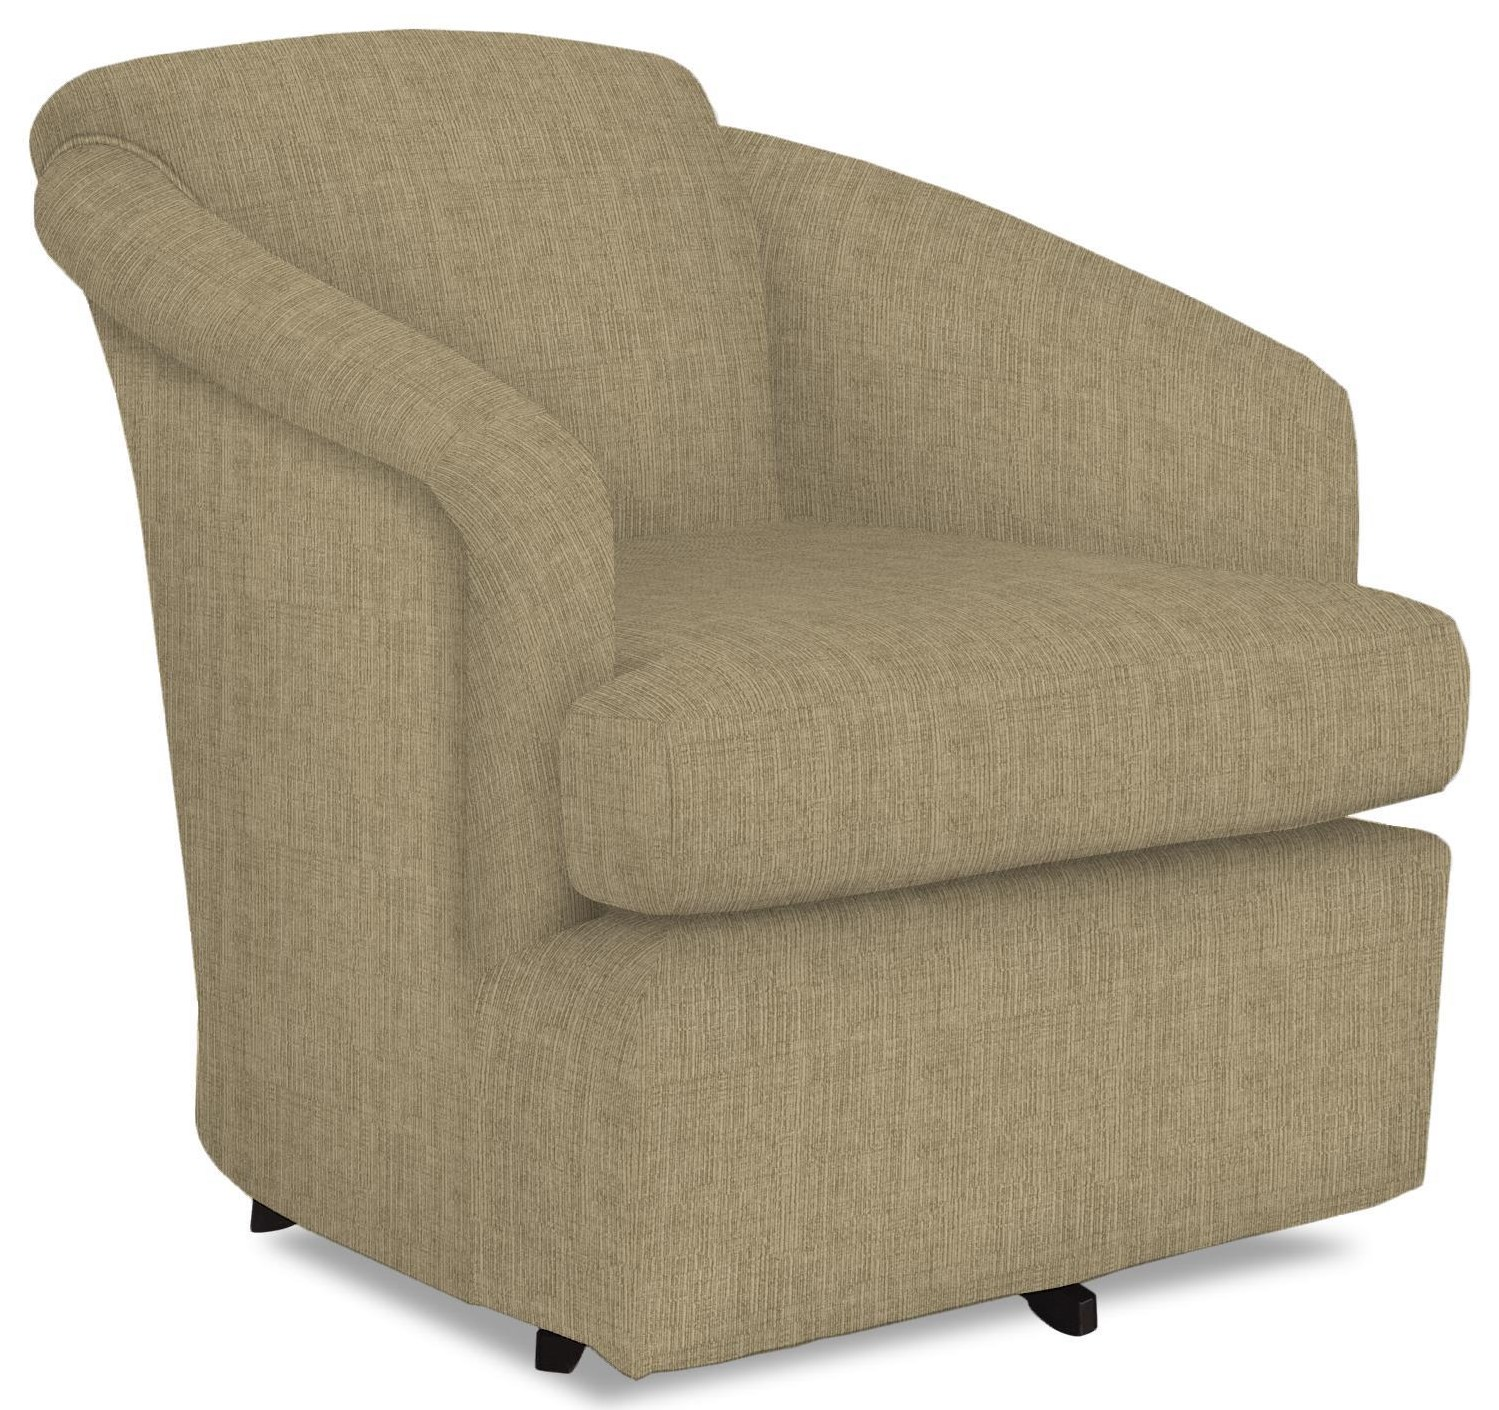 Best Home Furnishings Swivels Cass Swivel Chair - Item Number: 2568-1 21529